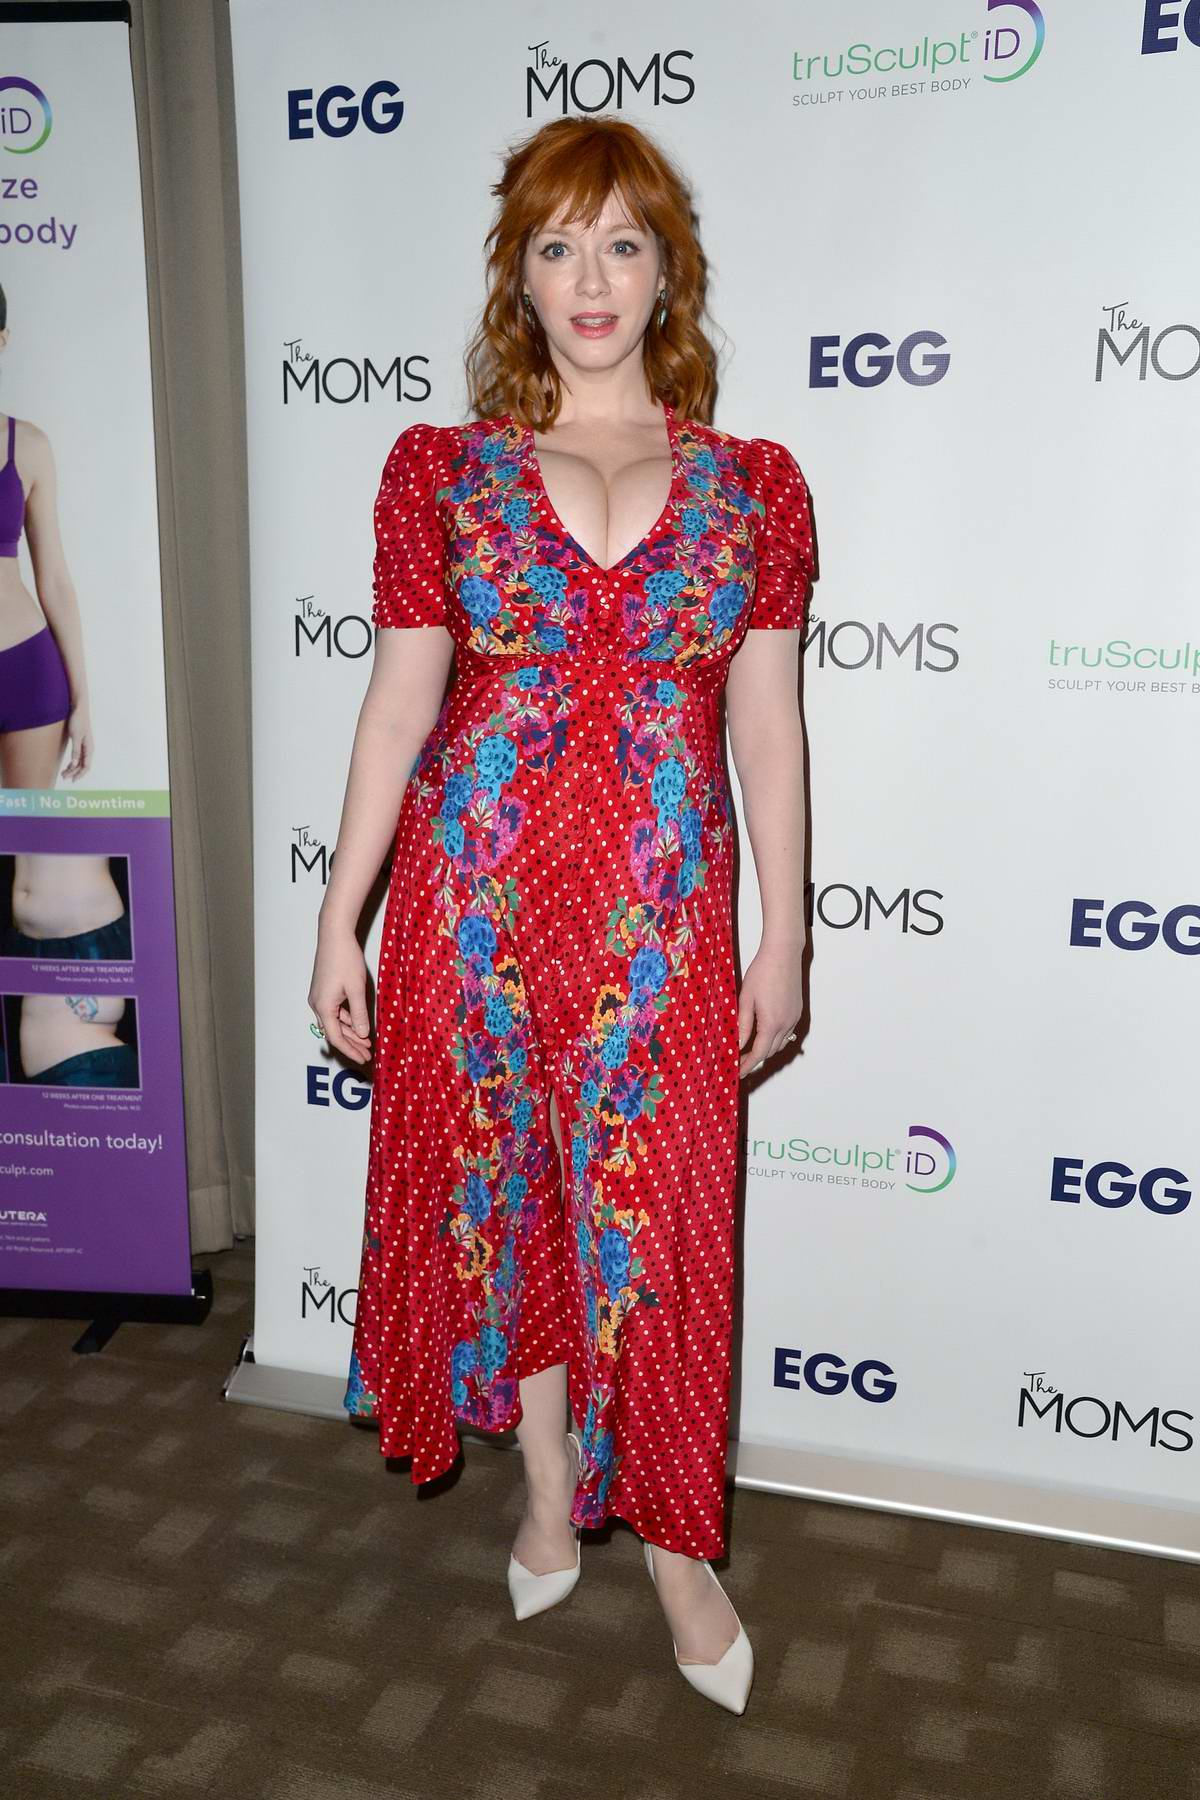 Christina Hendricks attends The Moms Mamarazzi event to celebrate the release of 'EGG' in New York City